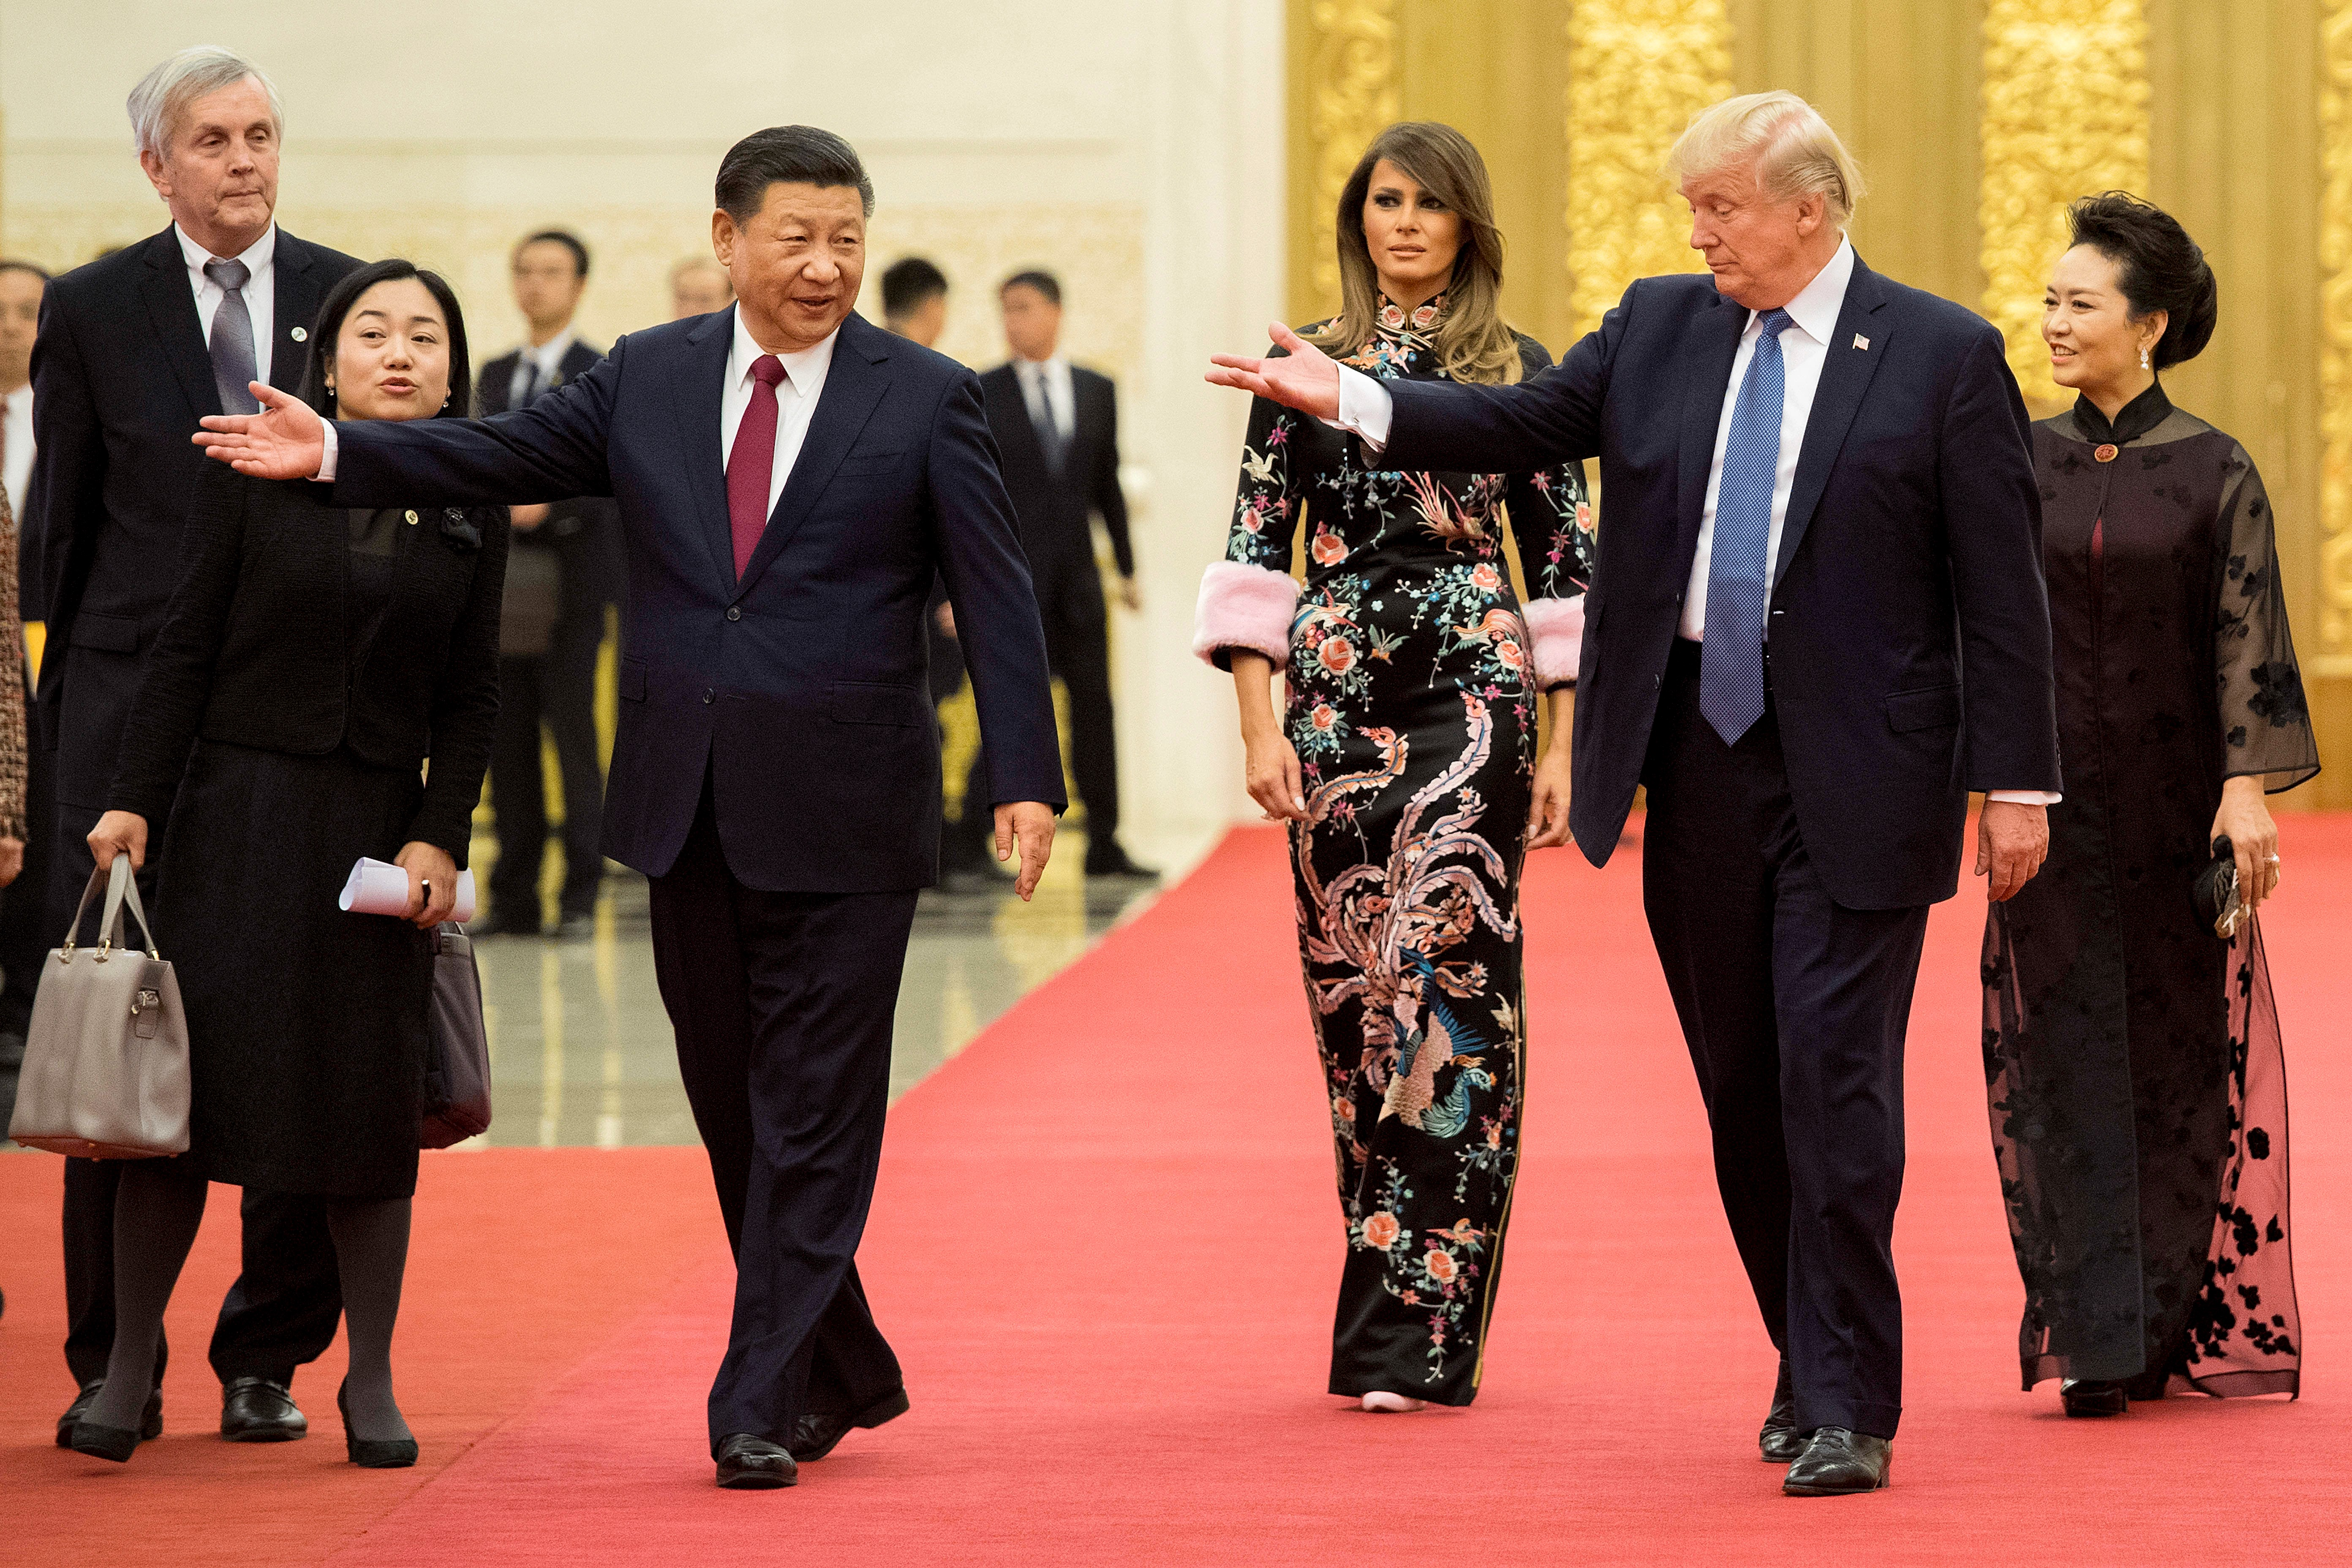 U.S. President Donald Trump, second right, gestures toward China's President Xi Jinping, third left, as U.S. first lady Melania Trump, center, and Xi's wife Peng Liyuan, right, look on at the Great Hall of the People in Beijing, Nov. 9, 2017.